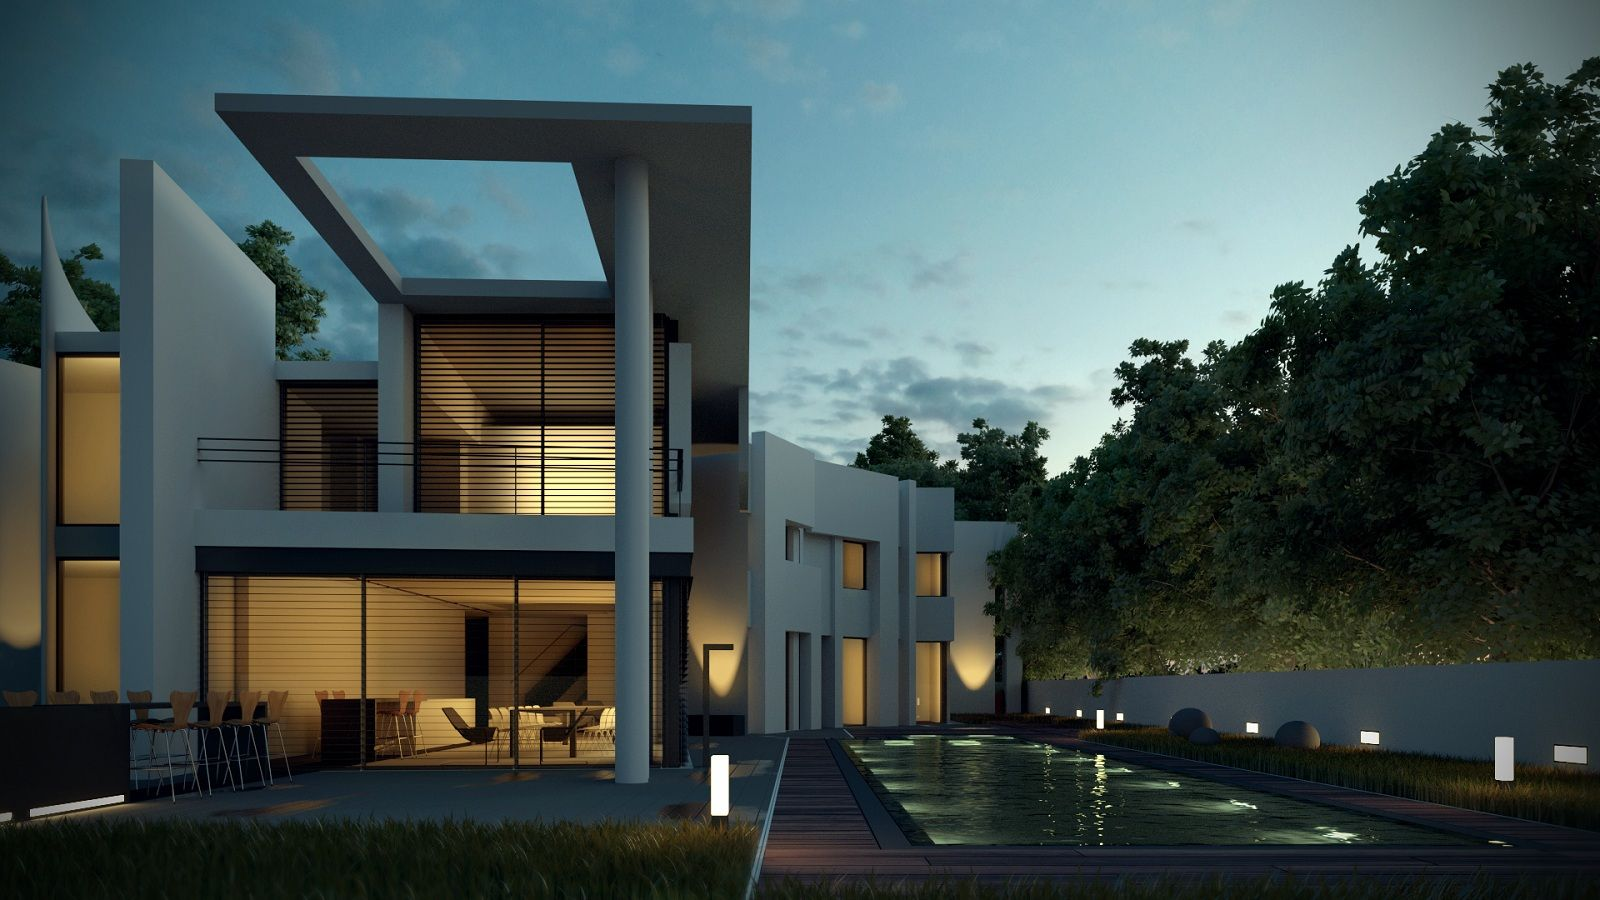 Blender Architektur Rendering Gh House Was Rendered In Blender Cycles Architecture